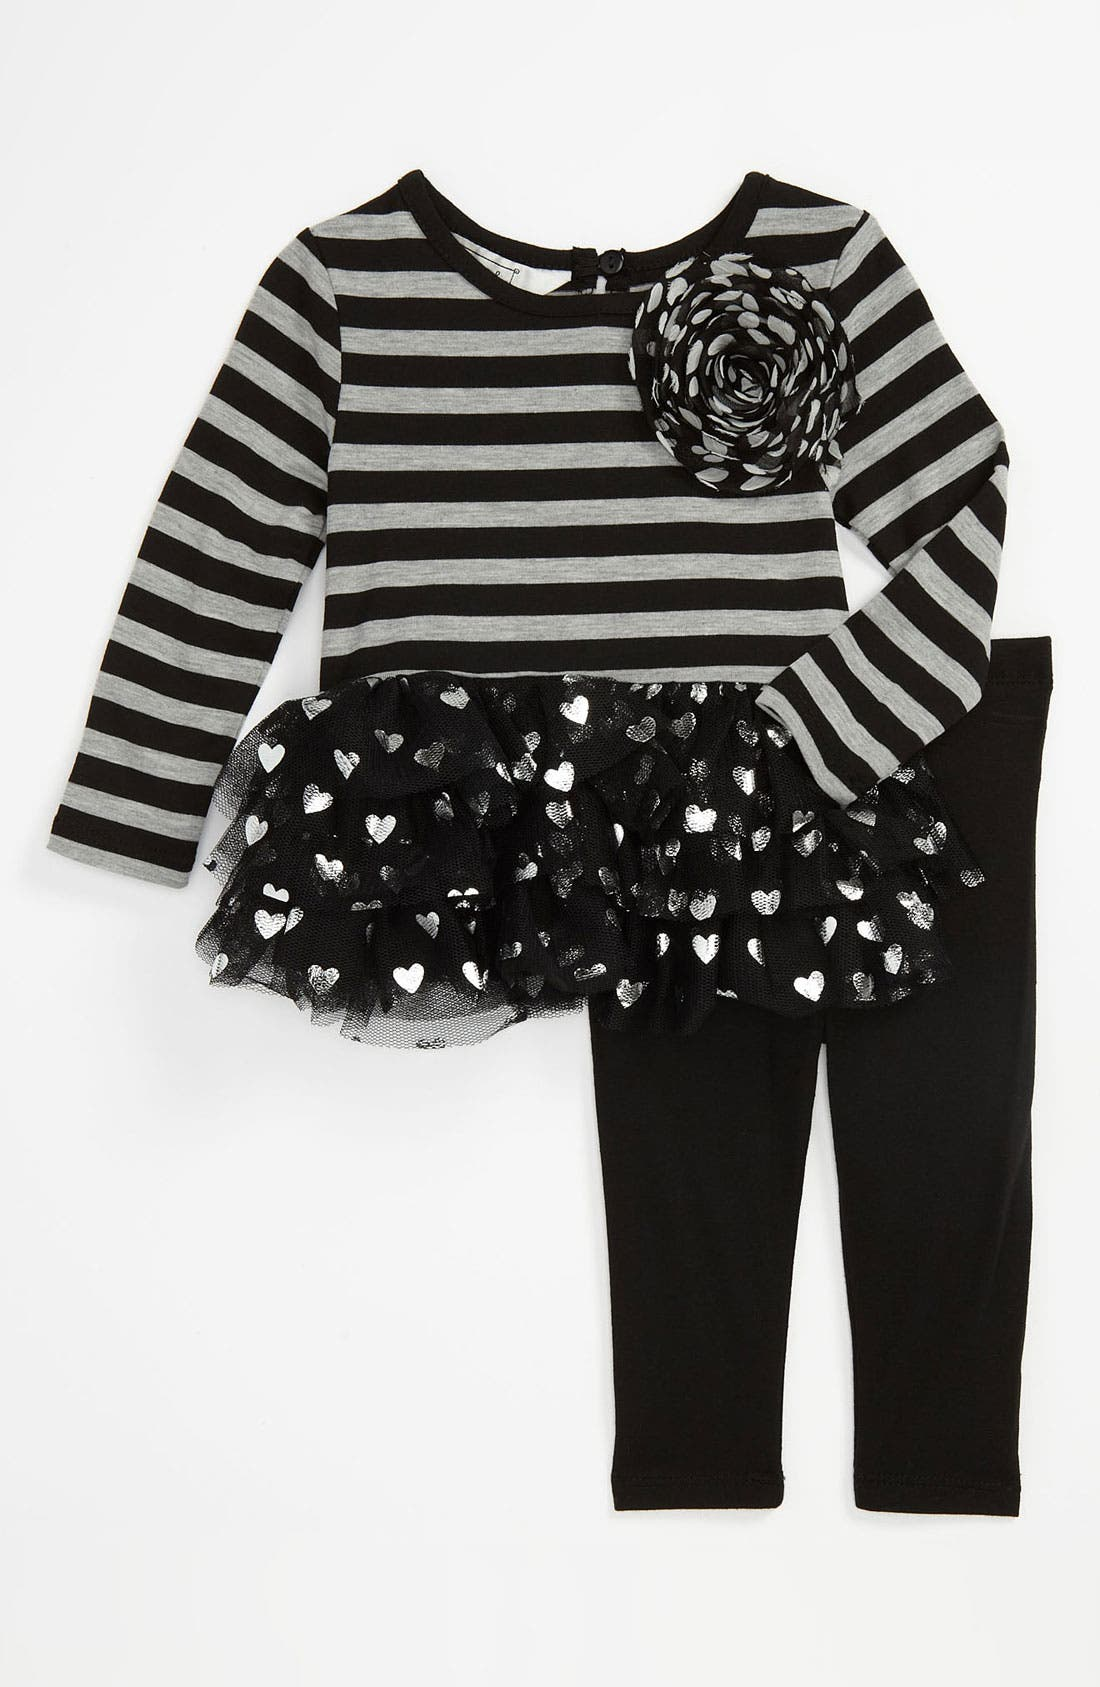 Main Image - Pippa & Julie Stripe Top & Leggings (Infant)